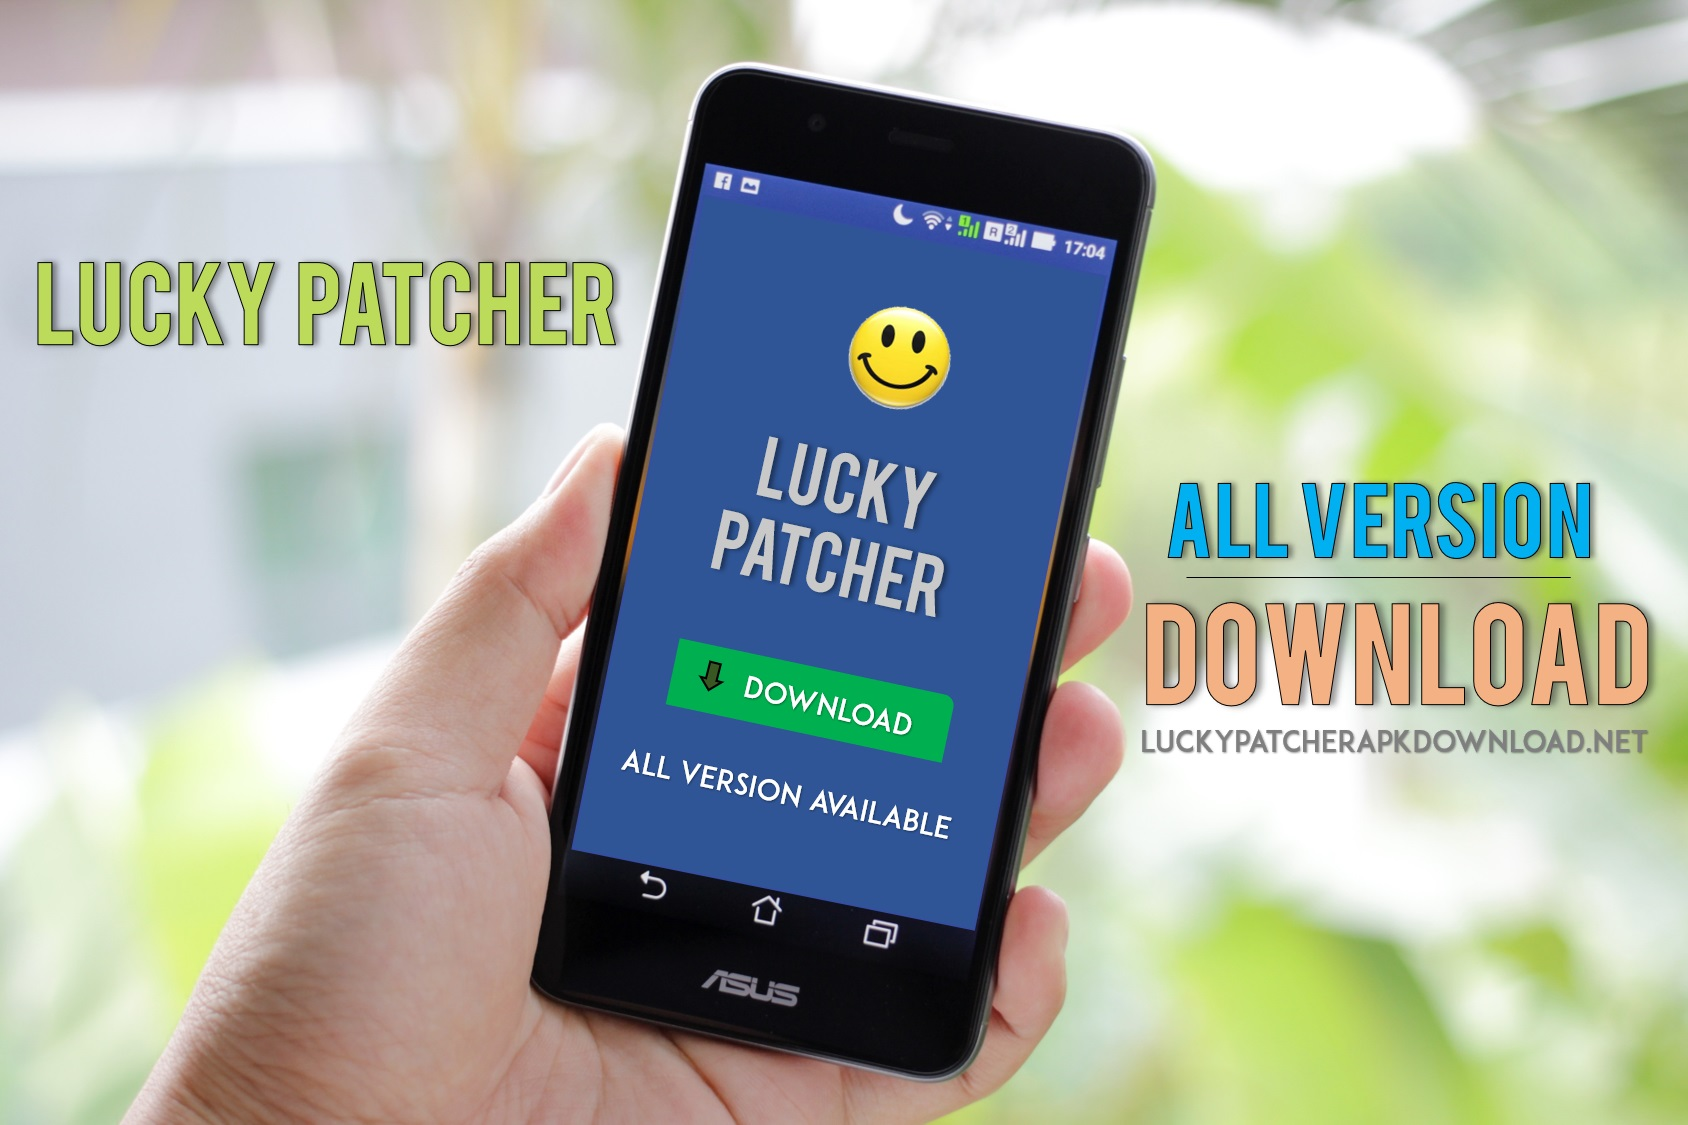 lucky pather download all version